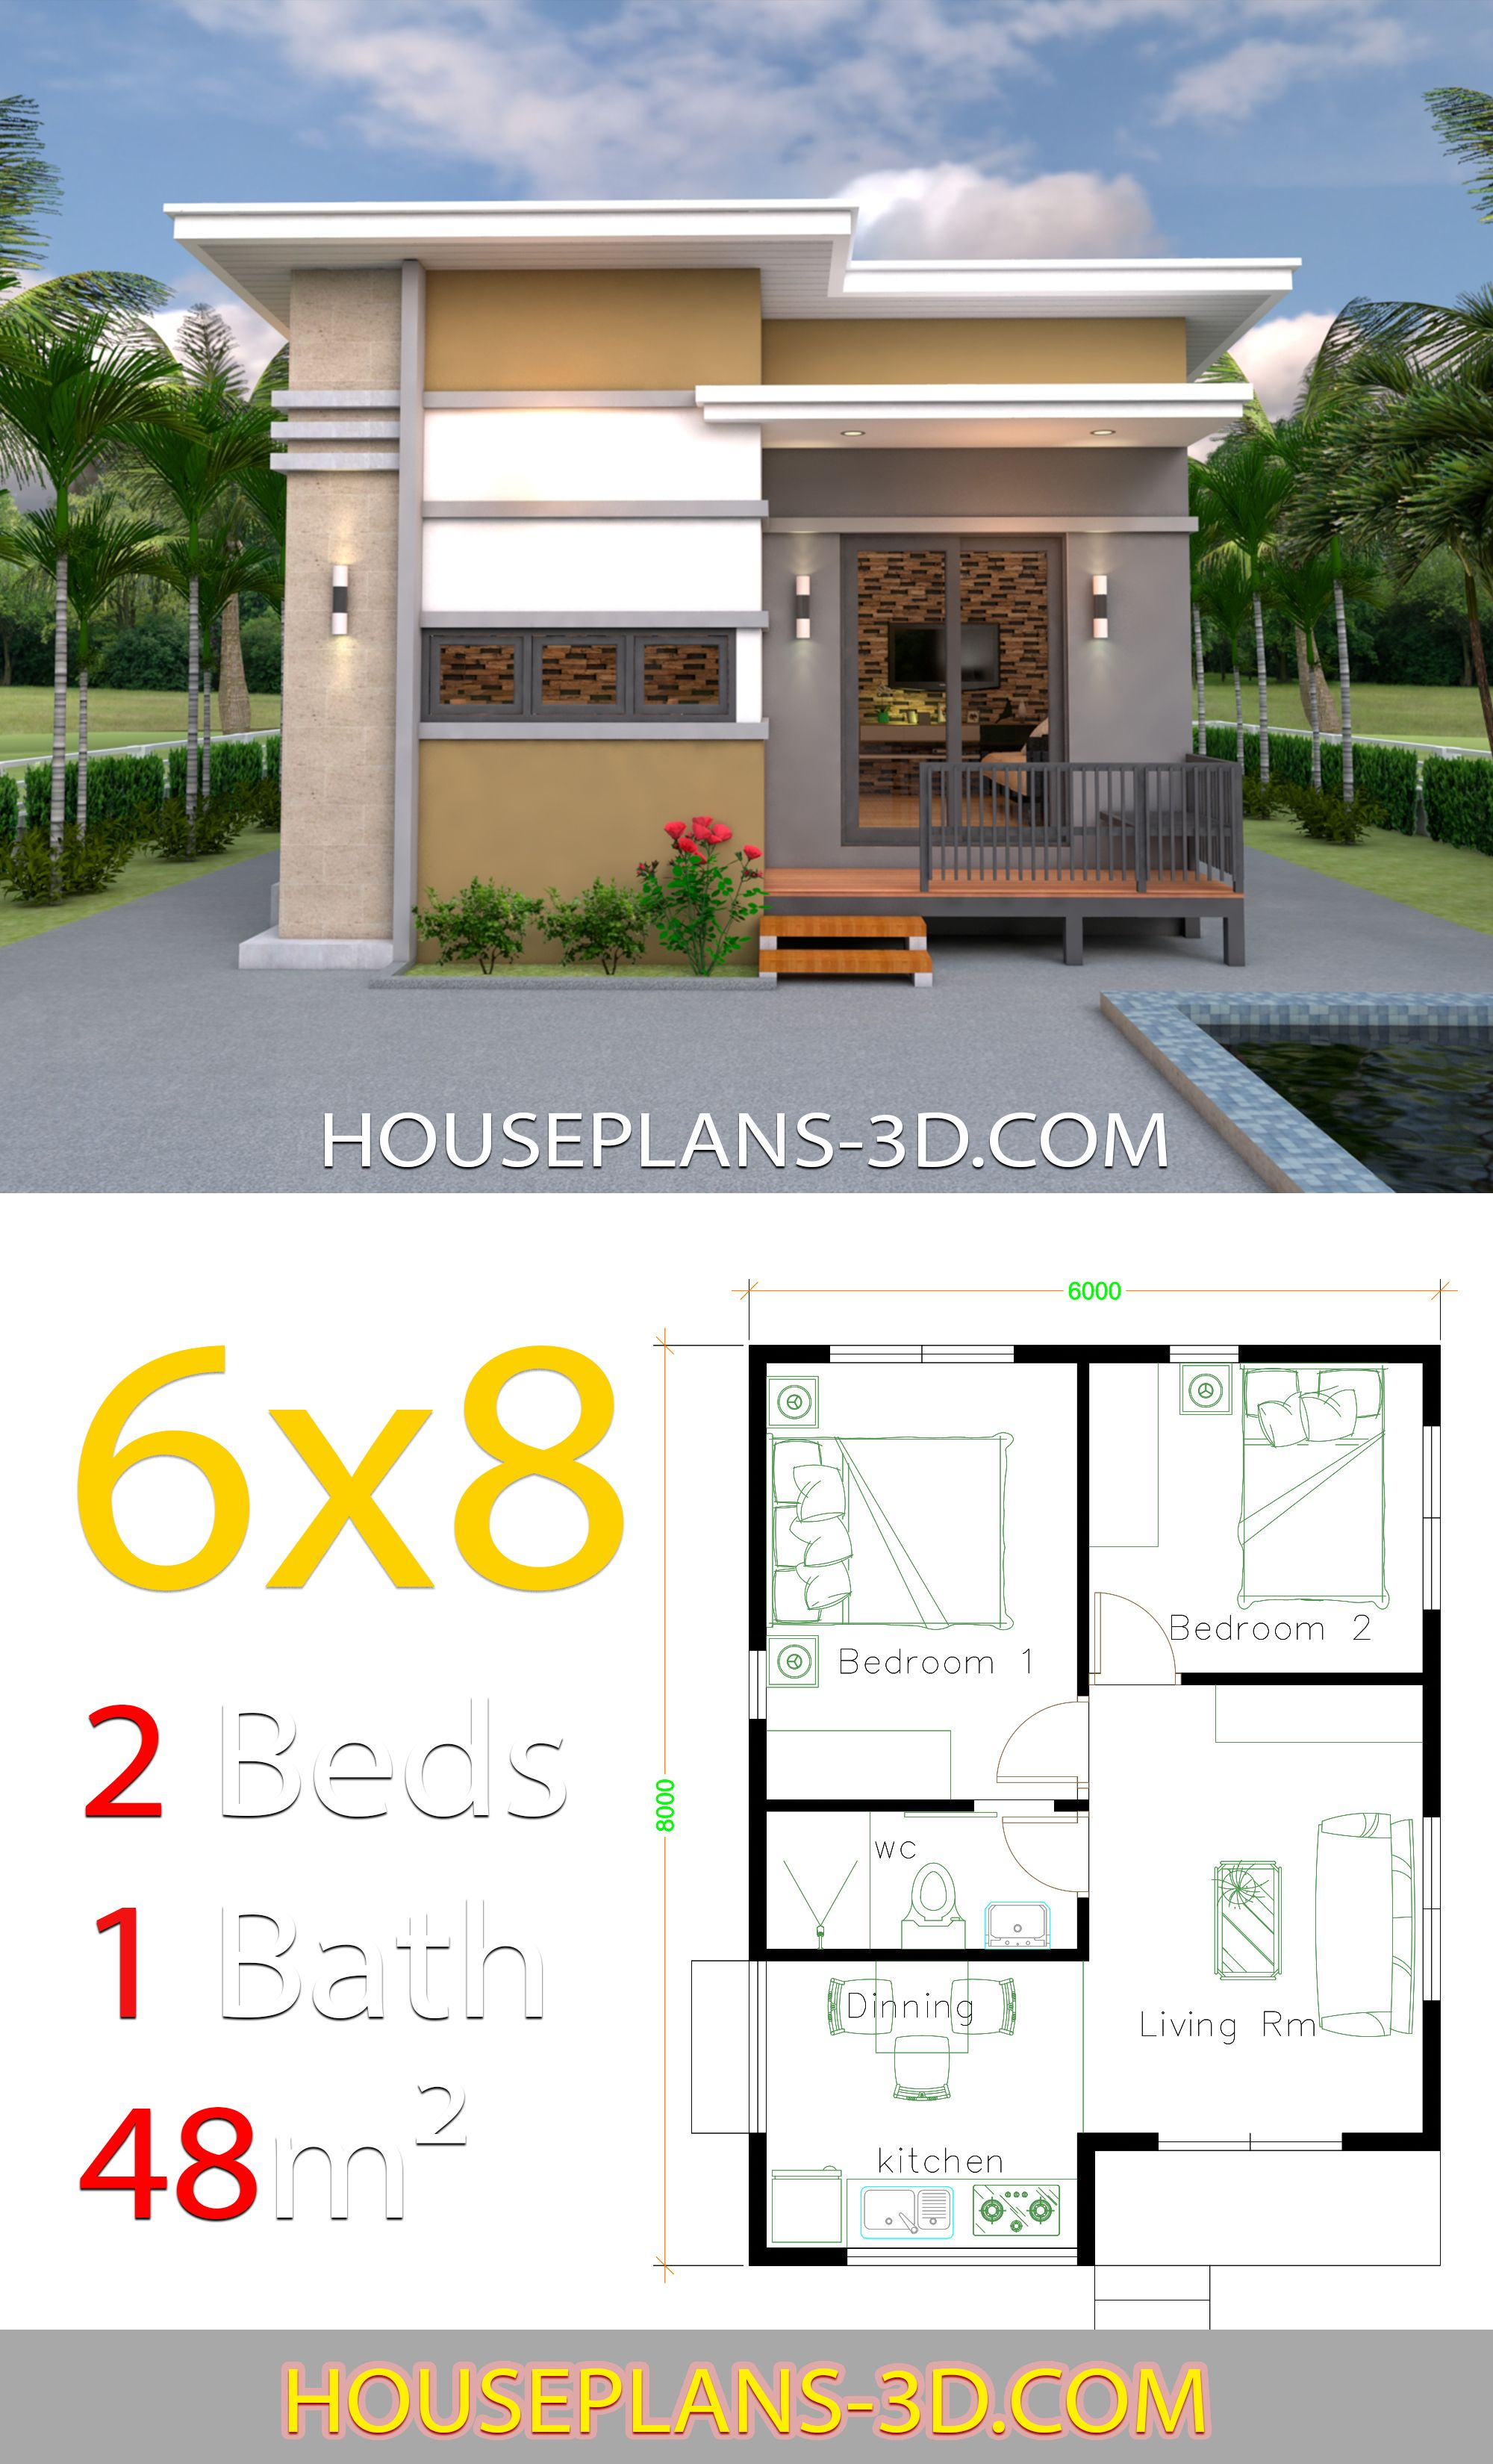 House Design 6x8 With 2 Bedrooms House Plans 3d Small House Design Plans 2 Bedroom House Plans Home Design Plans